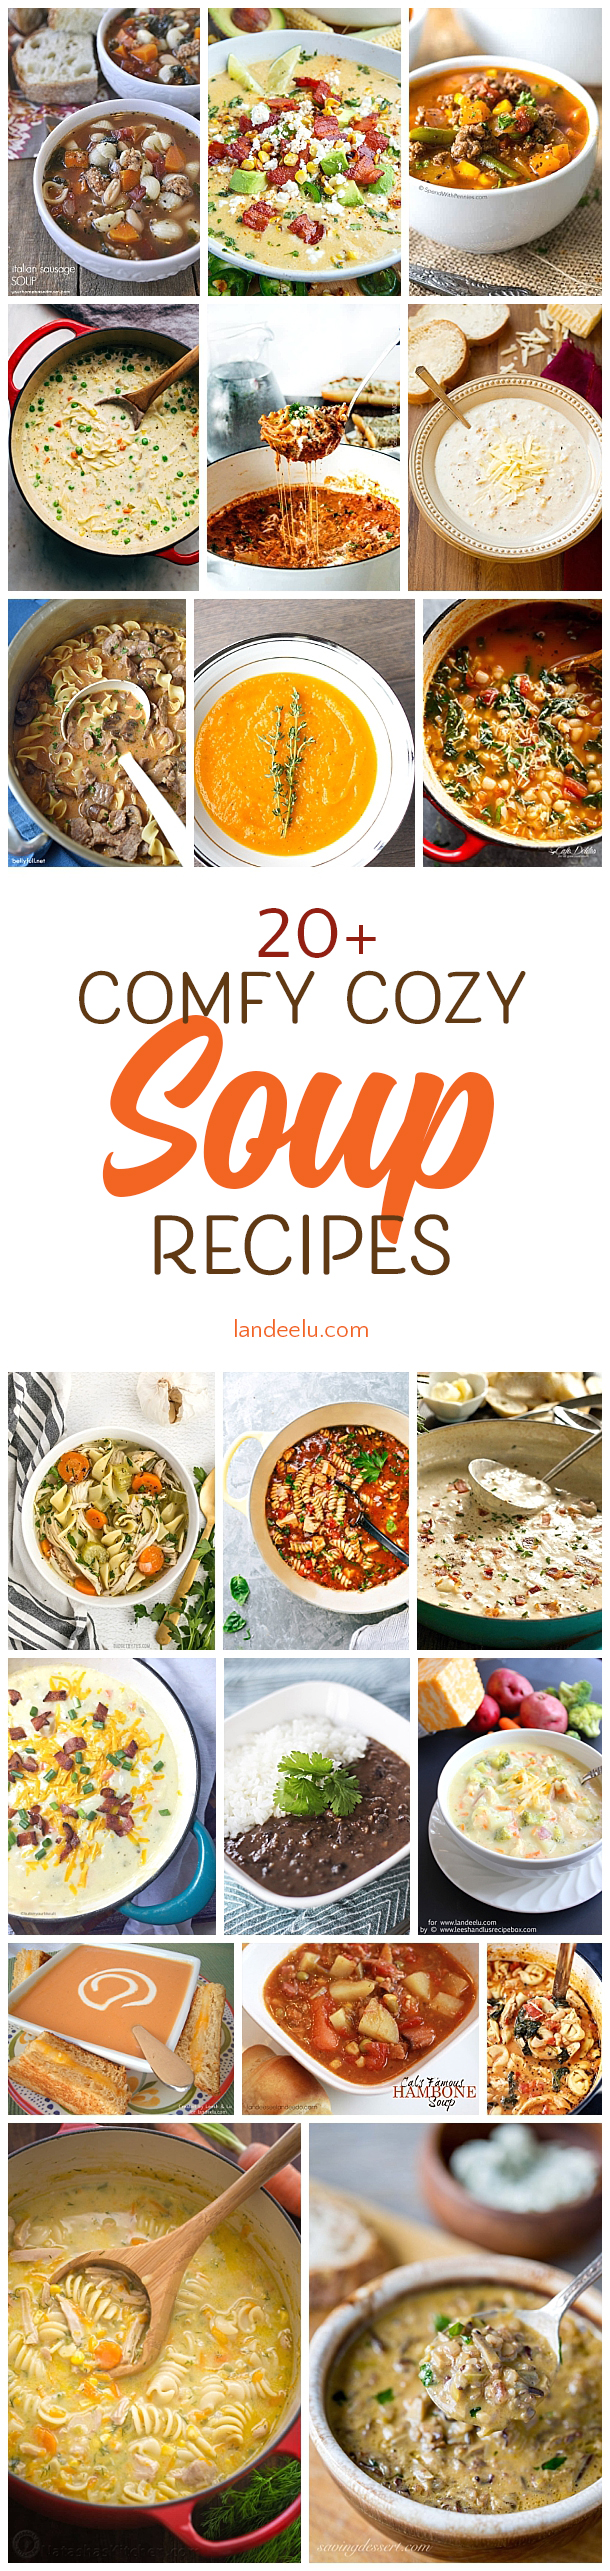 Some of the most delicious and best soup recipes out there